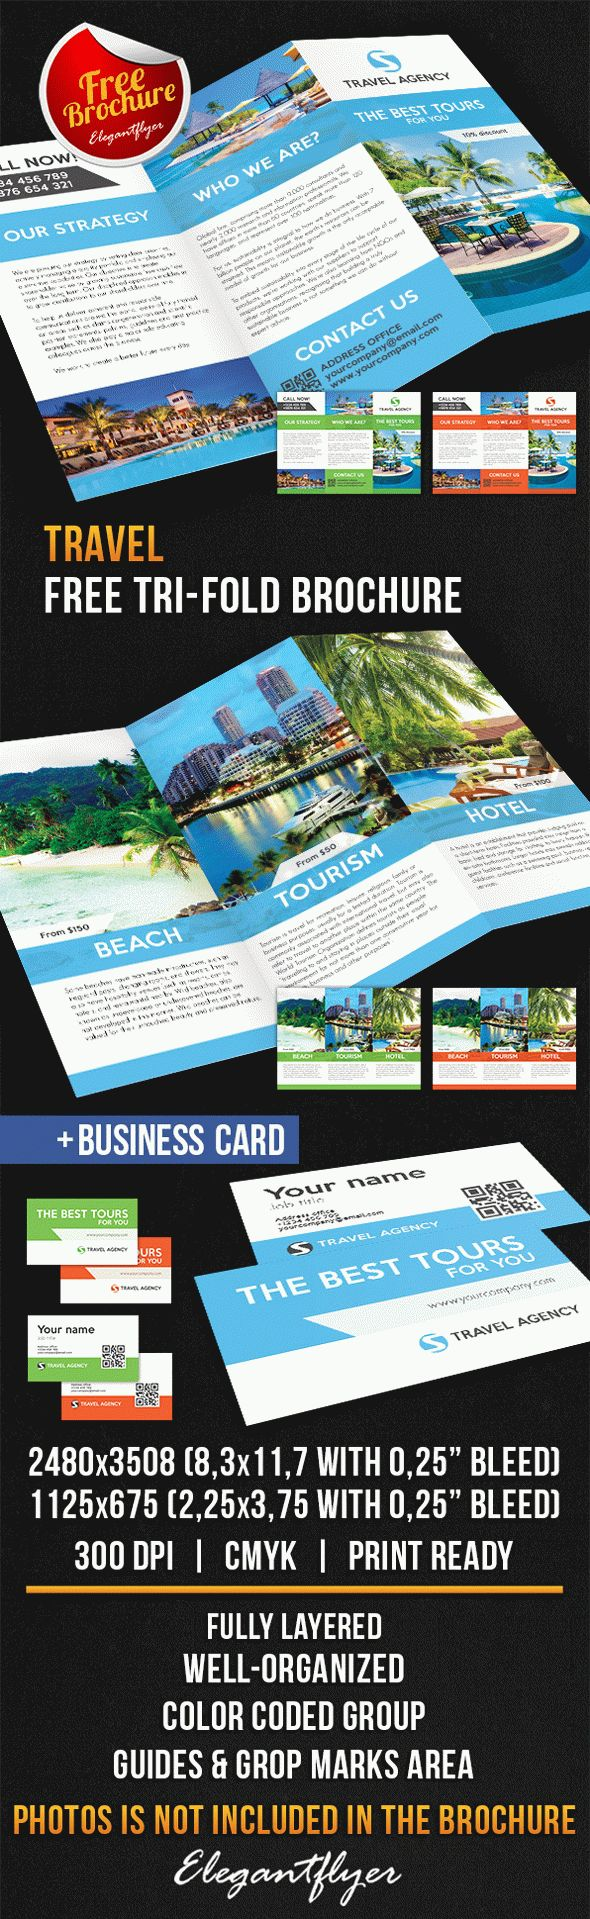 Travel tri fold brochure free psd template by elegantflyer for Free travel brochure templates